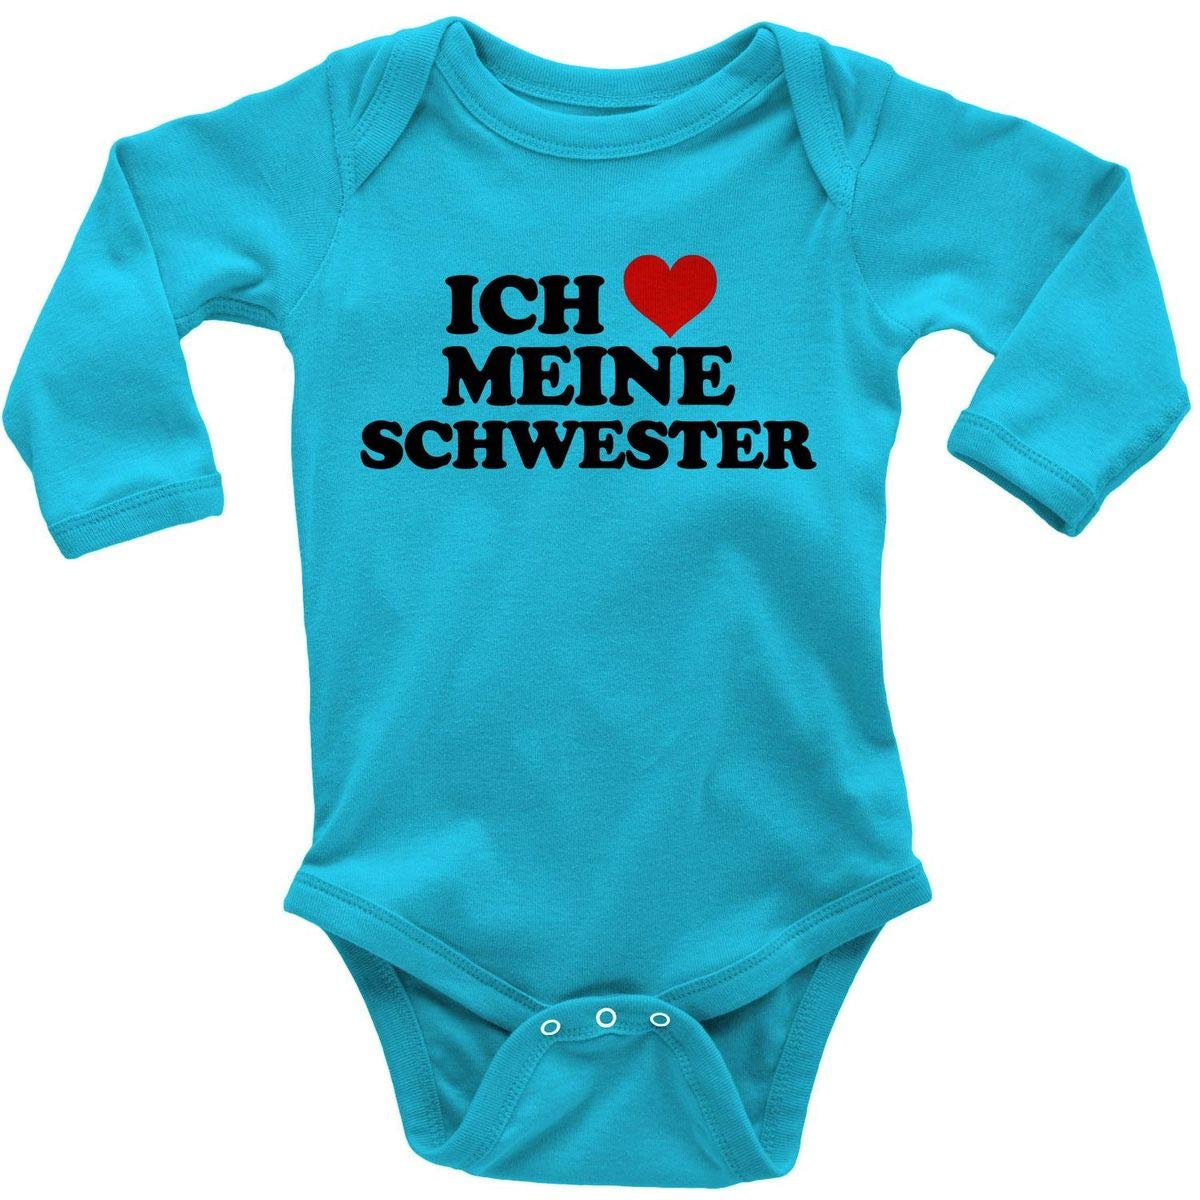 "Lustig Baby Body /"" I Love My Sister This Much /"" Baby-Body Strampler Junge"